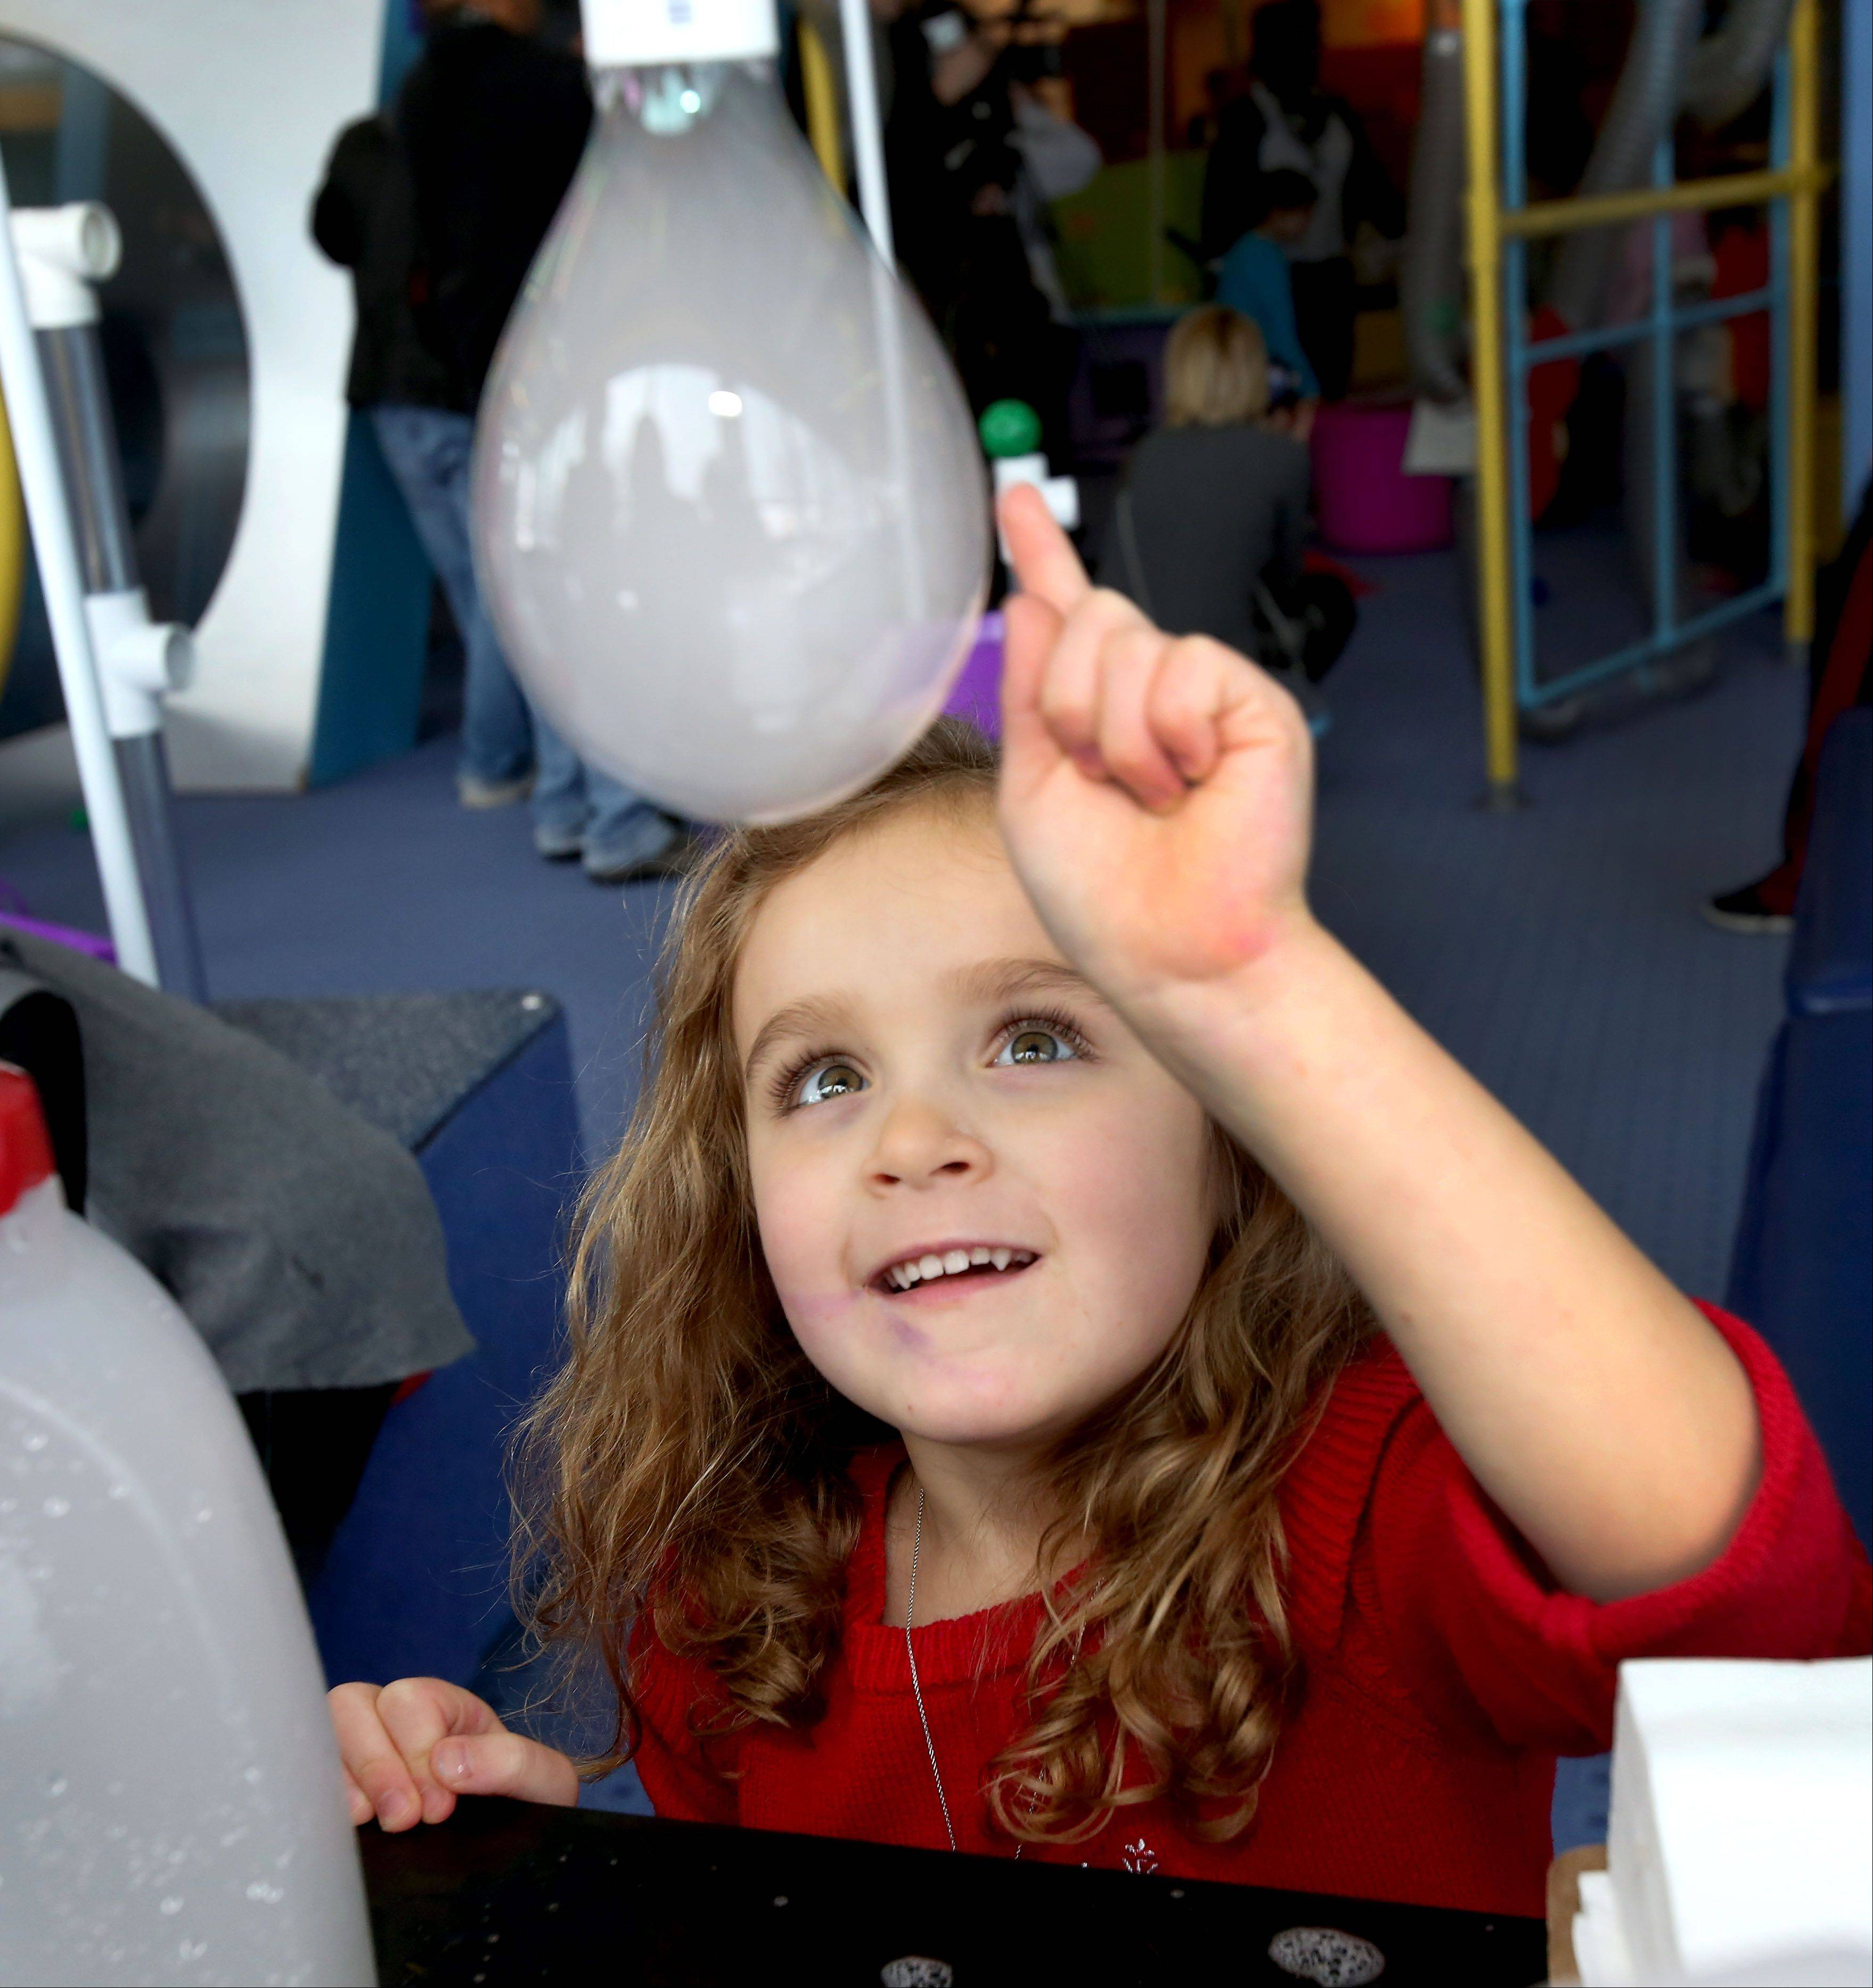 Addison Robbins, 4, of Elmhurst, gets ready to pop a dry ice bubble, just one of the activites available at the 12th annual Bubble Bash at the DuPage Children's Museum in Naperville on Tuesday.